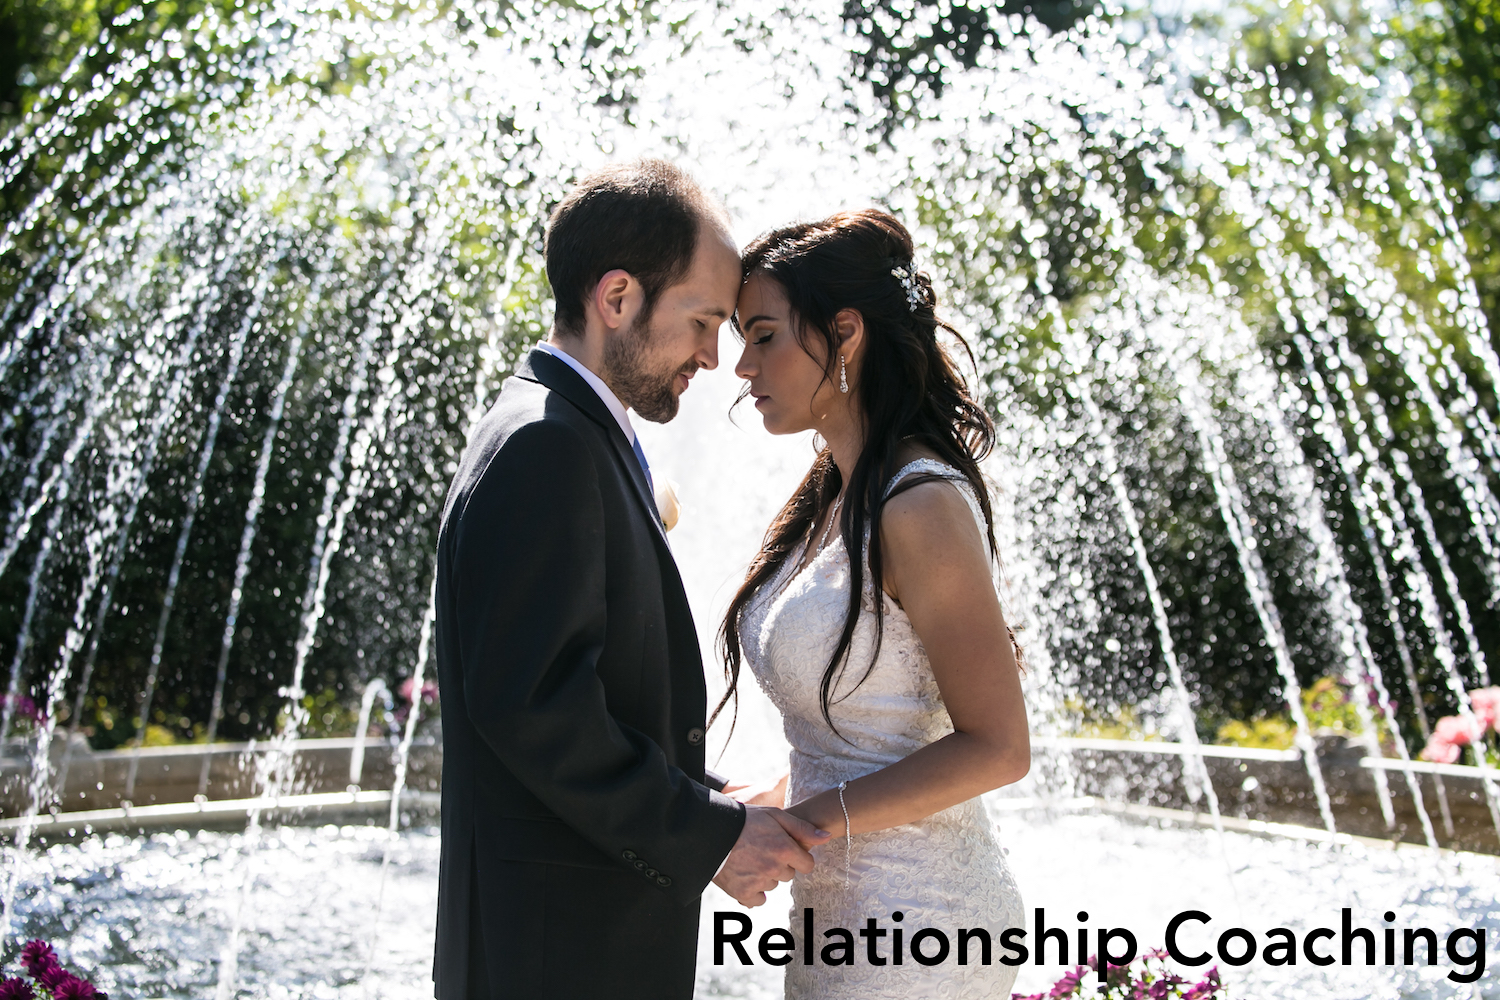 Dating and Relationship Coaching in South Windsor, CT, Hartford County, Connecticut (formerly in Kew Gardens, Queens, New York City, New York, NY), and on the phone or online anywhere. South Windsor, CT, Hartford County, Connecticut Life Coach and Queens, New York Life Coach Ninette. Contact to speak with a Life Coach, Relationship Coach, Career Coach and Spirituality Coach in South Windsor, CT, Hartford County, Connecticut, CT (formerly in Kew Gardens, Queens, New York, NY), who offers life coaching, relationship coaching, career coaching and spirituality coaching in South Windsor, CT, Hartford County, Connecticut, CT and over the phone or online anywhere. Coaching in English And Hebrew. Seeking a life coach, relationship coach, career coach, or spirituality coach in South Windsor, CT, Hartford County, Connecticut, CT (formerly in Kew Gardens, Queens, New York, NY)? Contact South Windsor, CT, Hartford County, Connecticut Life Coach, Relationship Coach, Career Coach, and Spirituality Coach and Kew Gardens, Queens, New York Life Coach, Relationship Coach, Career Coach and Spirituality Coach Ninette for life coaching, relationship coaching, career coaching, and spirituality coaching in South Windsor, CT, Hartford County, Connecticut, CT (formerly in Kew Gardens, Queens, New York City, New York, NY) or over the phone or online anywhere. Life Coach, Relationship Coach, Career Coach and Spirituality Coach in South Windsor, CT, Hartford County, Connecticut, formerly in Kew Gardens, Queens, New York City, New York, NY, providing life coaching, relationship coaching, career coaching and spirituality coaching in South Windsor, CT, Hartford County, Connecticut, Kew Gardens, Queens, New York City, New York, NY, and over the phone or online anywhere. If you're seeking life coaching, relationship coaching, career coaching, or spirituality coaching in South Windsor, CT, Hartford County, Connecticut or Kew Gardens, Queens, New York City, New York, NY, contact South Windsor, CT, Hartford County, Connecticut Life Coach, Relationship Coach, Career Coach, and Spirituality Coach and Kew Gardens, Queens, New York Life Coach, Relationship Coach, Career Coach and Spirituality Coach Ninette for life coaching, relationship coaching, career coaching, and spirituality coaching in South Windsor, CT, Hartford County, Connecticut, CT, or Kew Gardens, Queens, New York City, New York, NY or over the phone or online anywhere. South Windsor, CT, Hartford County, Connecticut Life Coach, Relationship Coach, Career Coach and Spirituality Coach and Queens, New York Life Coach, Life Coach, Relationship Coach, Career Coach and Spirituality Coach in South Windsor, CT, Hartford County, Connecticut (formerly in Kew Gardens, Queens, New York City, New York, NY), providing life coaching, relationship coaching, career coaching and spirituality coaching in South Windsor, CT, Hartford County, Connecticut, CT (formerly in Kew Gardens, Queens, New York City, New York, NY) and over the phone or online anywhere, for powerful, empowering life coaching. Get ready for amazing coaching and guidance! Contact Life Coach Ninette to speak with a life coach, relationship coach, career coach and spirituality coach in South Windsor, CT, Hartford County, Connecticut, CT (formerly in Kew Gardens, Queens, New York City, New York, NY) for life coaching, relationship coaching, career coaching and spirituality coaching in South Windsor, CT, Hartford County, Connecticut, CT (formerly in Kew Gardens, Queens, New York City, New York, NY). South Windsor, CT, Hartford County, Connecticut Life Coach, Relationship Coach, Career Coach, and Spirituality Coach and Queens, New York Life Coach, Relationship Coach, Career Coach, and Spirituality Coach Ninette provides life coaching, relationship coaching, career coaching and spirituality coaching in South Windsor, CT, Hartford County, Connecticut, CT (formerly in Kew Gardens, Queens, New York City, New York, NY) and over the phone or online anywhere!